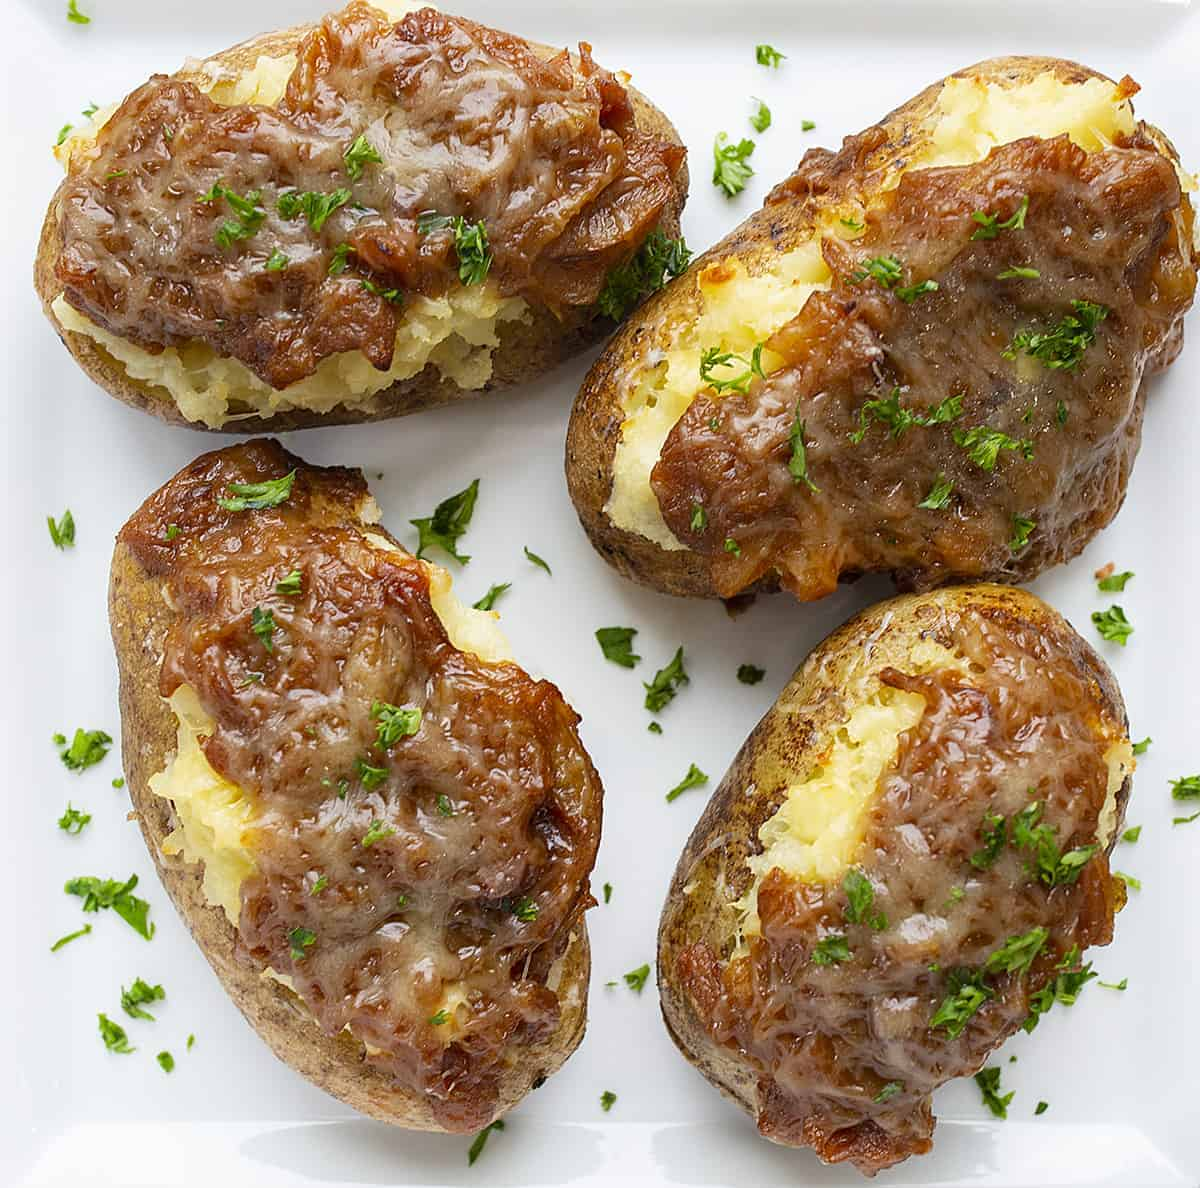 Overhead of French Onion Twice Baked Potatoes on White Plate